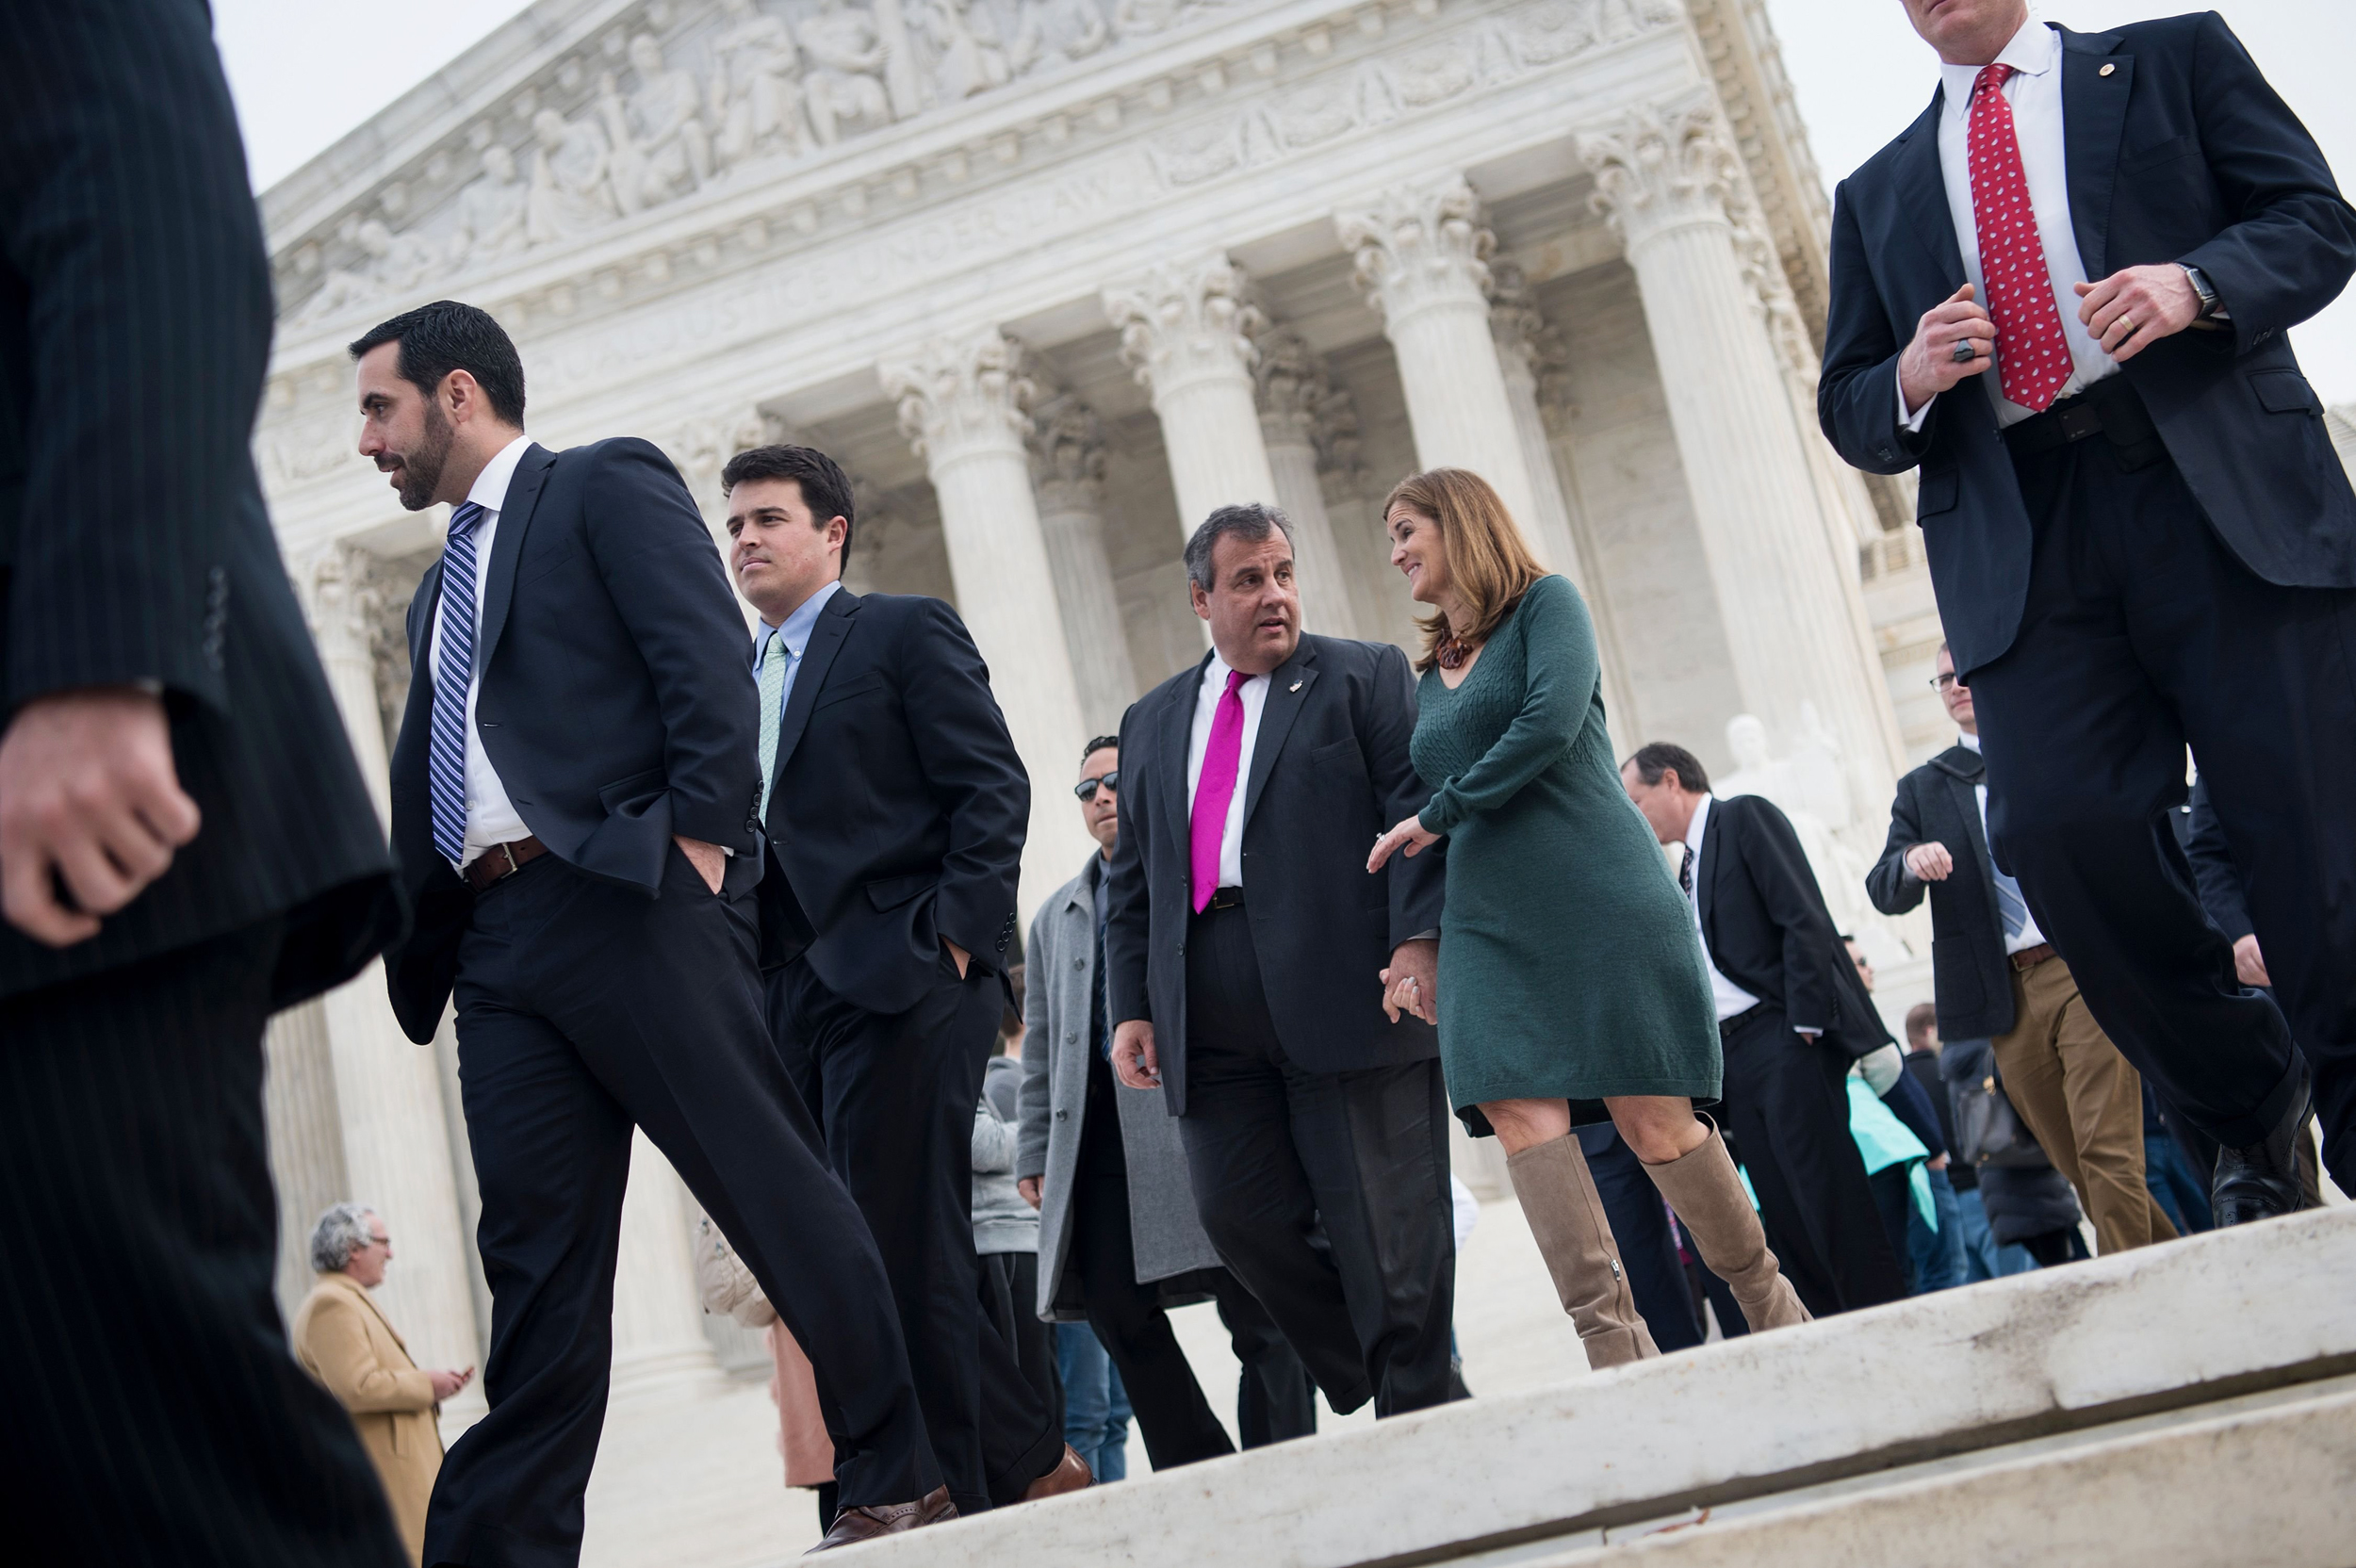 Image: Christie and his wife leave the Supreme Court